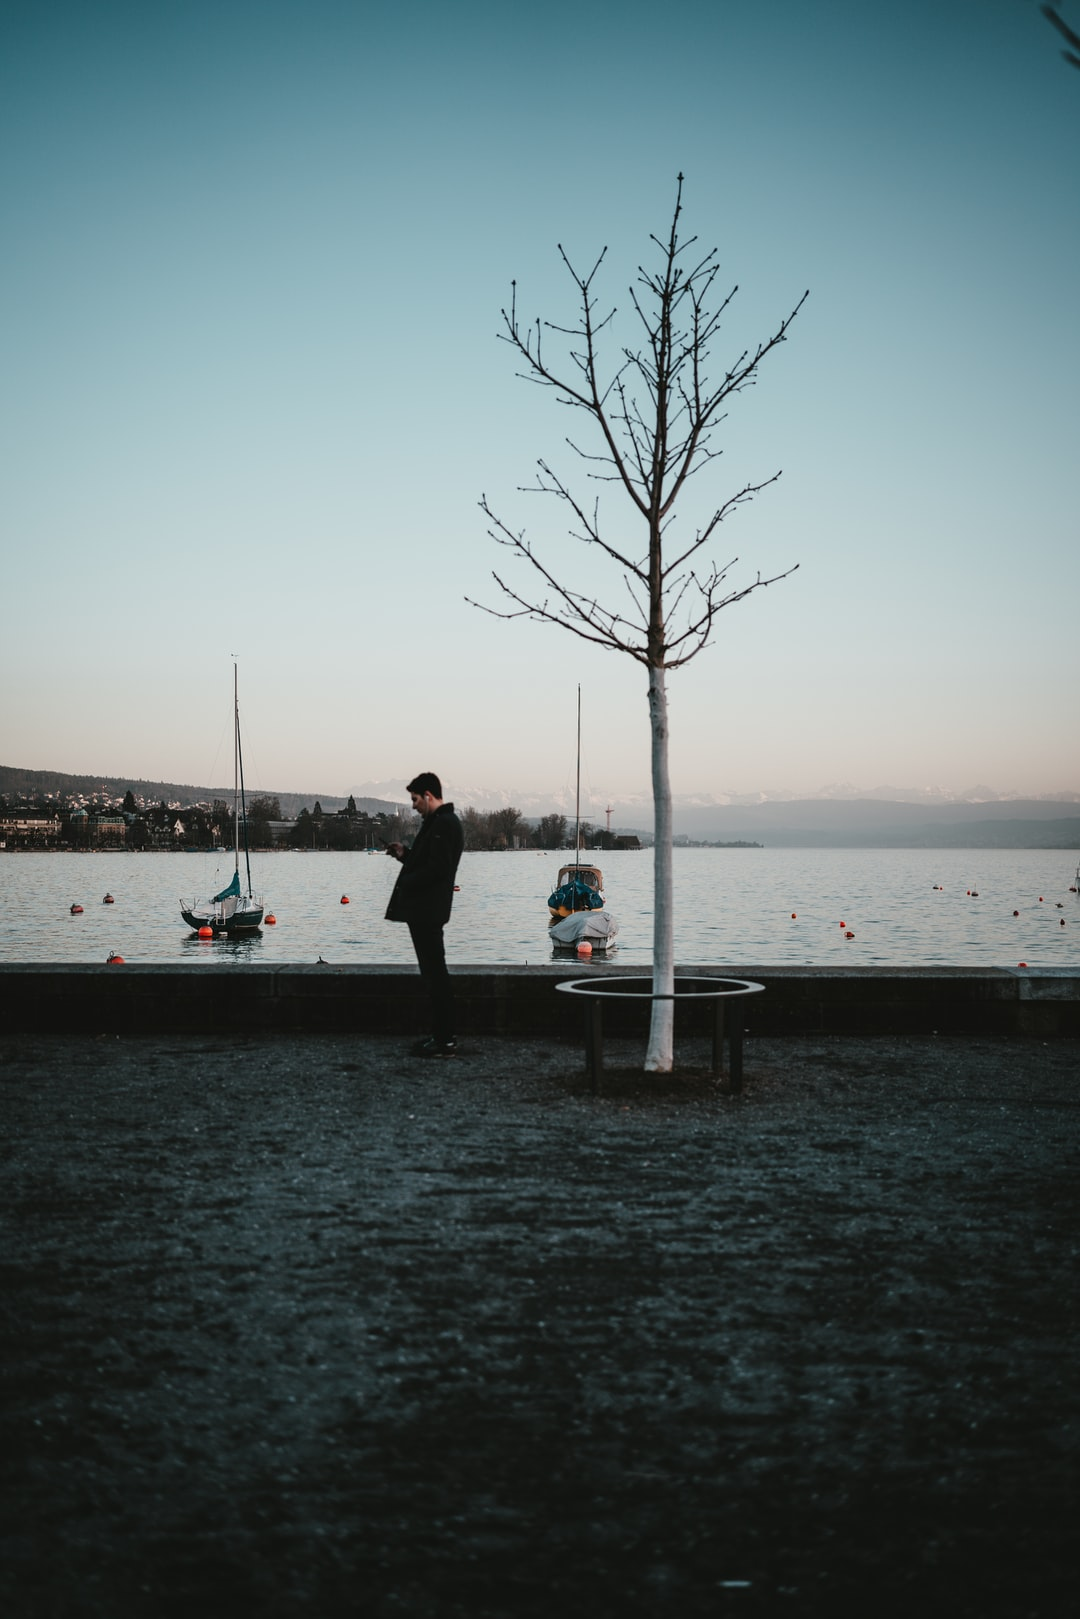 couple standing on dock near body of water during daytime